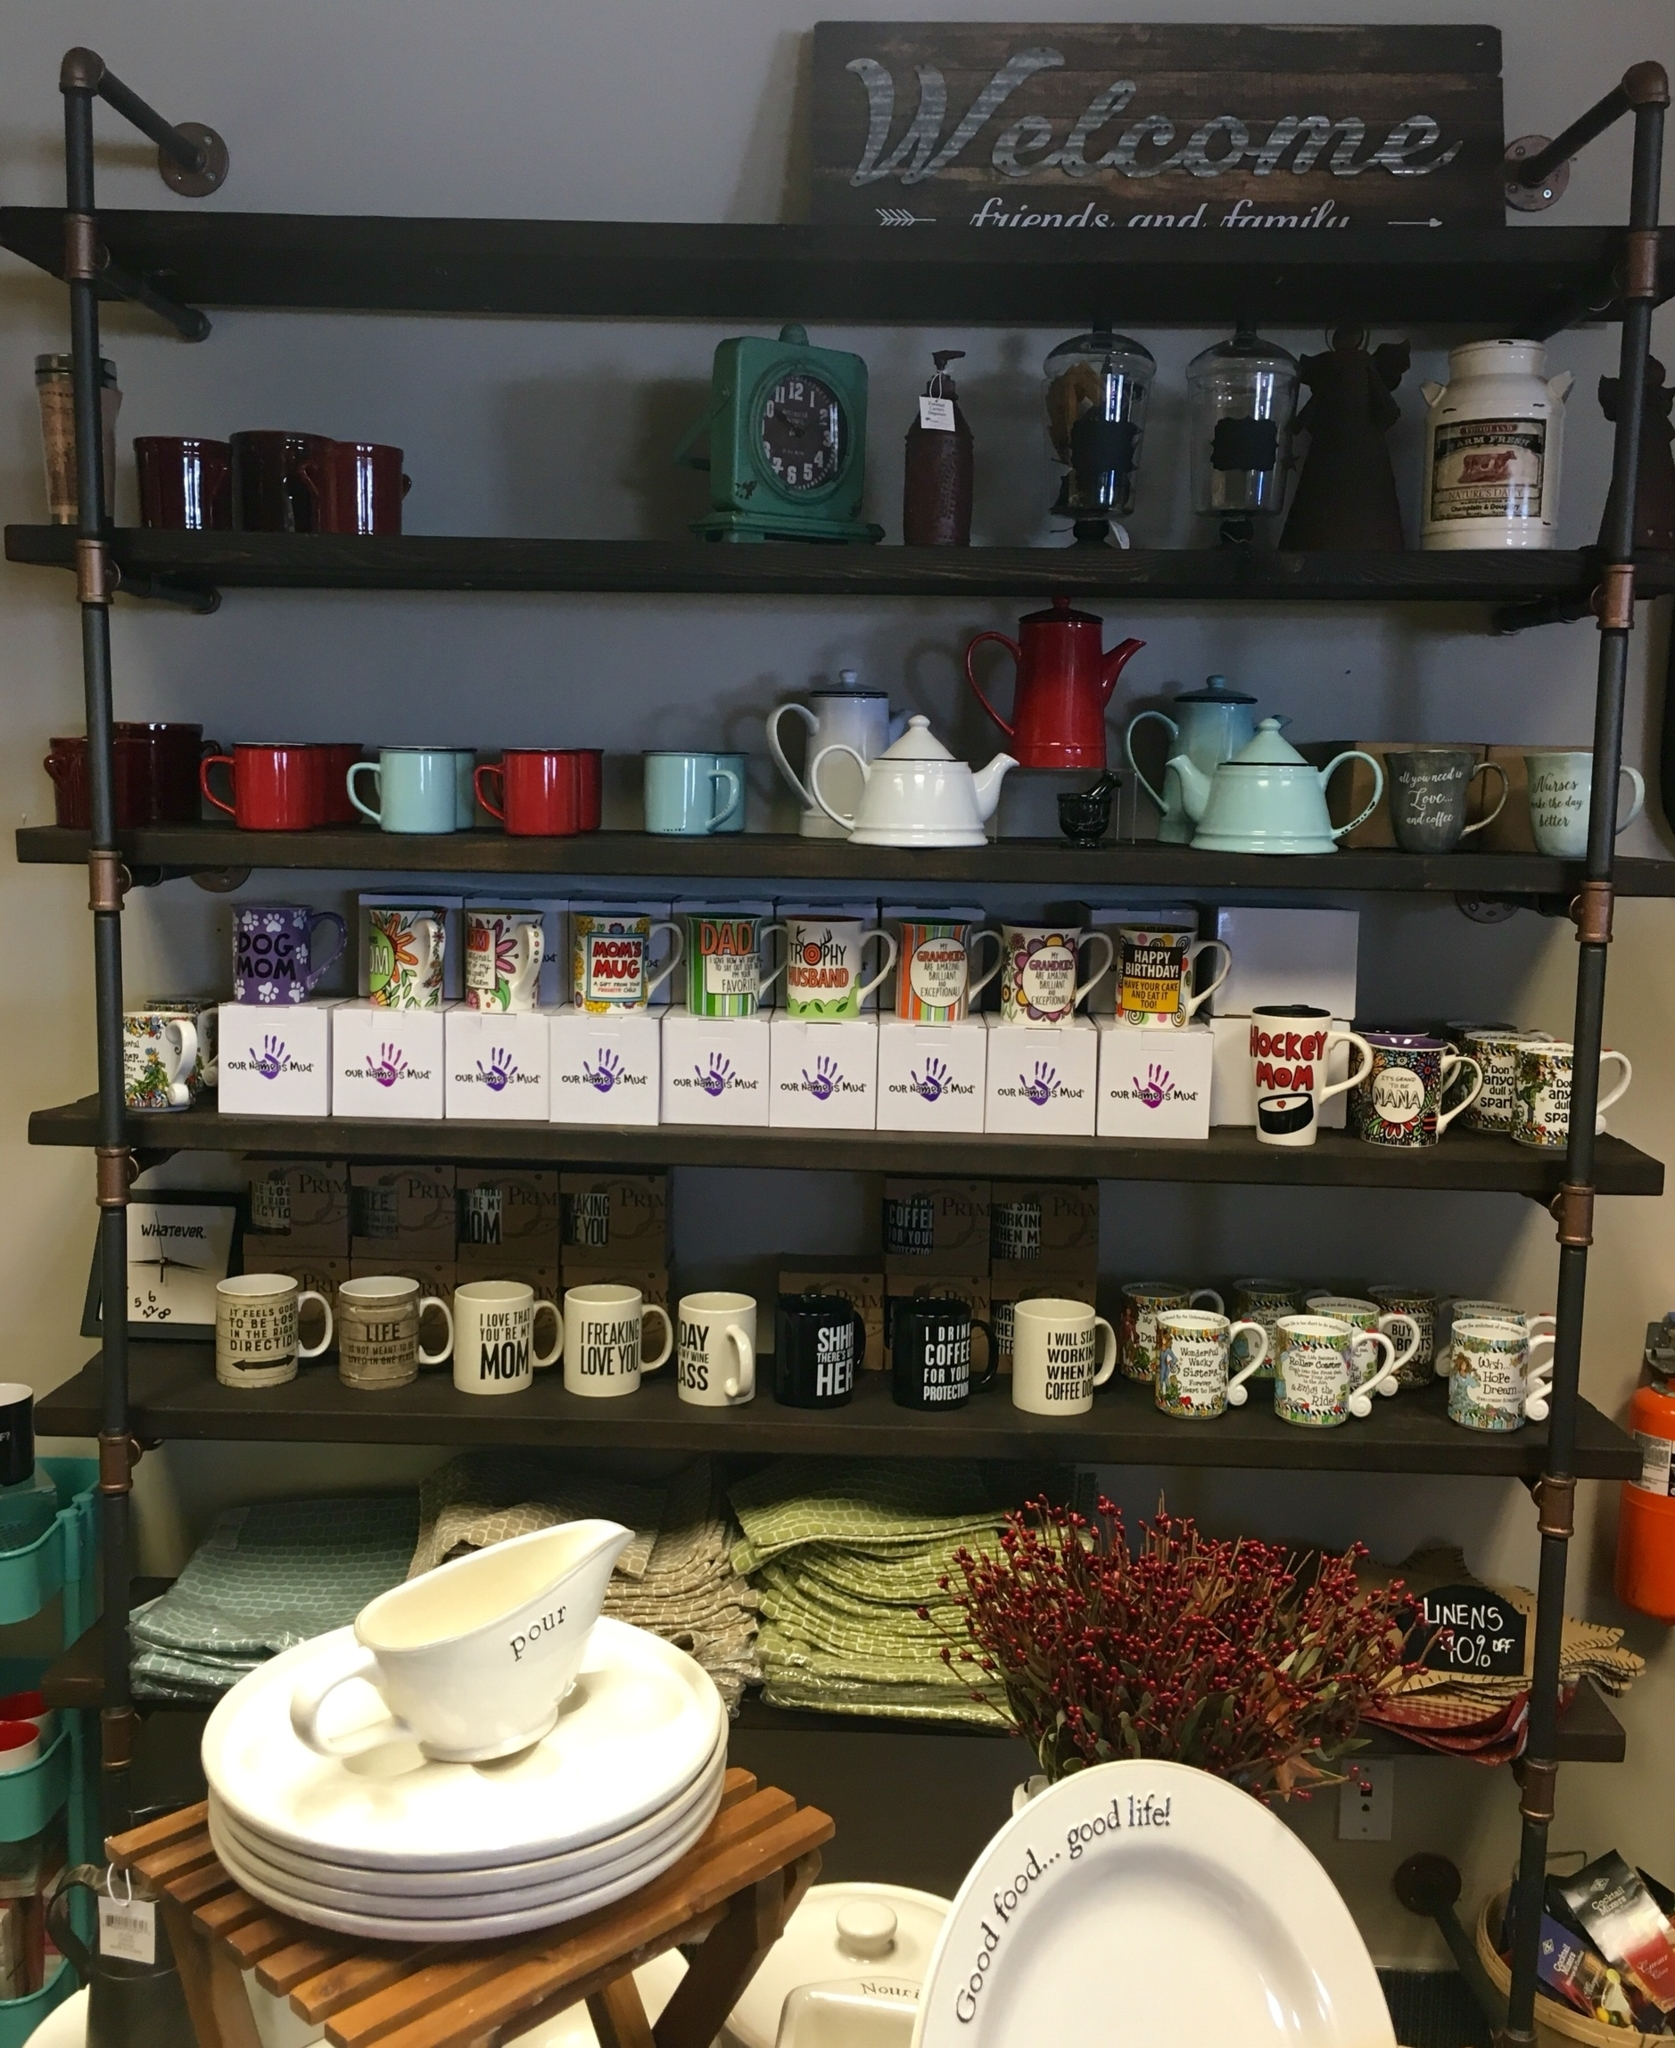 Home Goods Store in BC Prince George V2K 2H7 Bellissima 3839 Austin Rd W  (778)415-4444